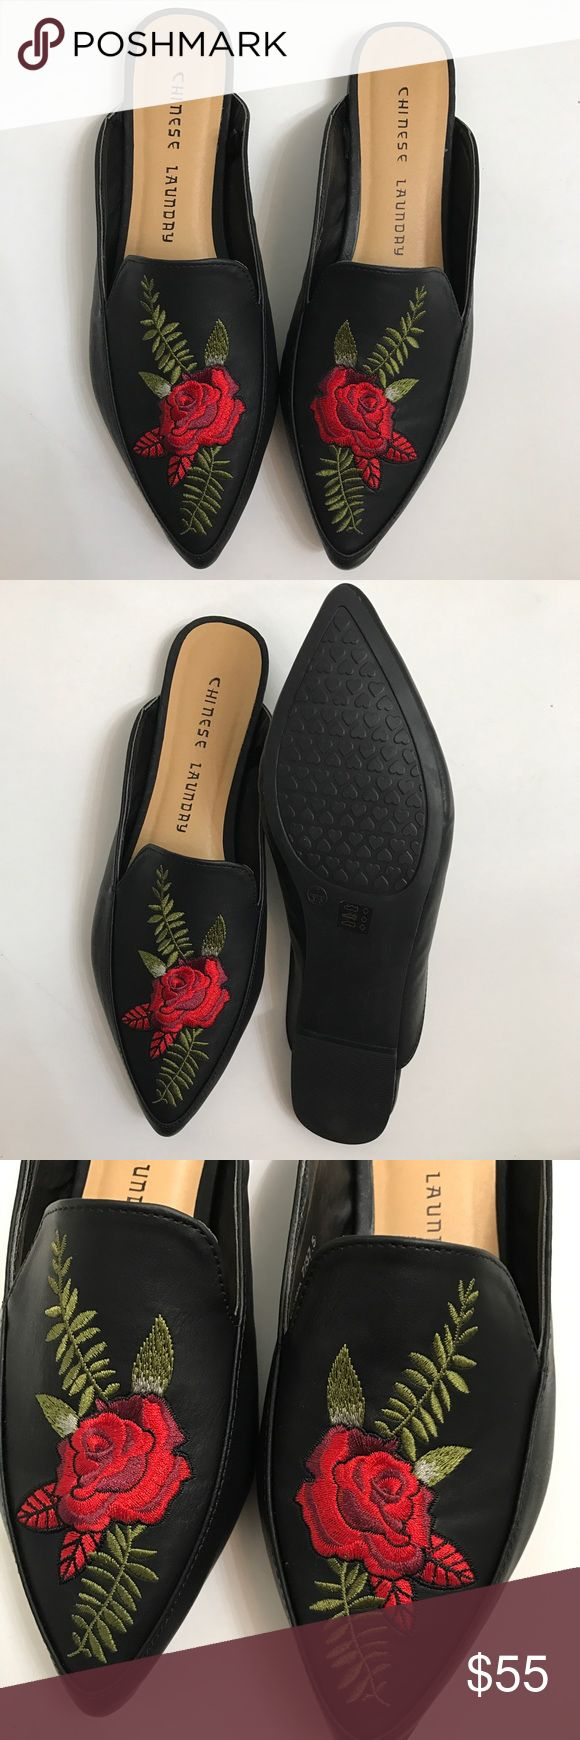 Loafers floral  Loafers mules Flowers Embroidery FancyWork Chinese Laundry New 7 size  Firm  price !!! Tags  Dolce & Gabbana  Chic shoes  Trendy  Fashion  Flowers print Chinese Laundry Shoes Mules & Clogs